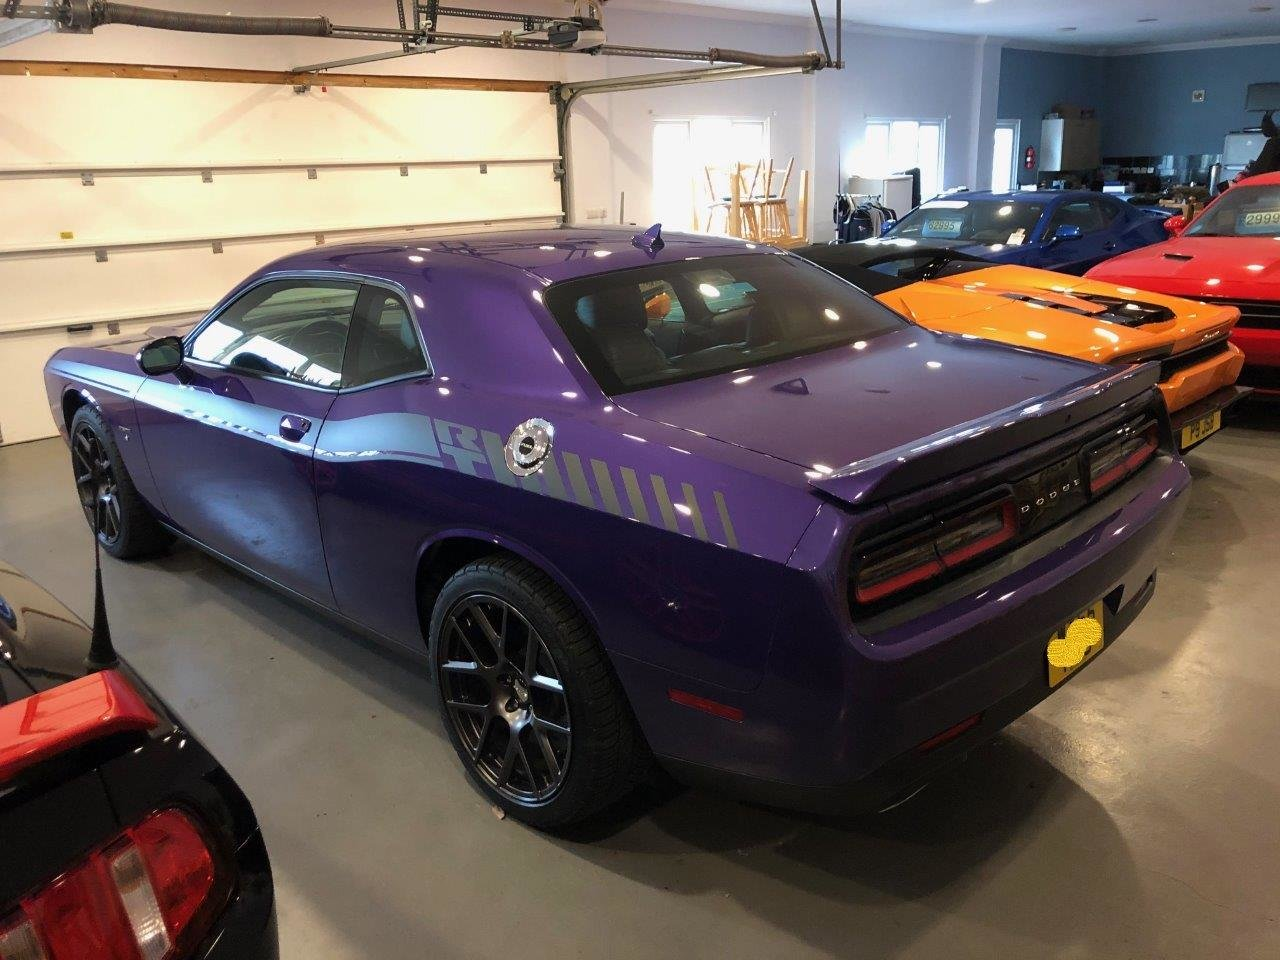 2016 Challenger R/T HEMI V8 in Plumb Crazy Purple For Sale (picture 2 of 6)